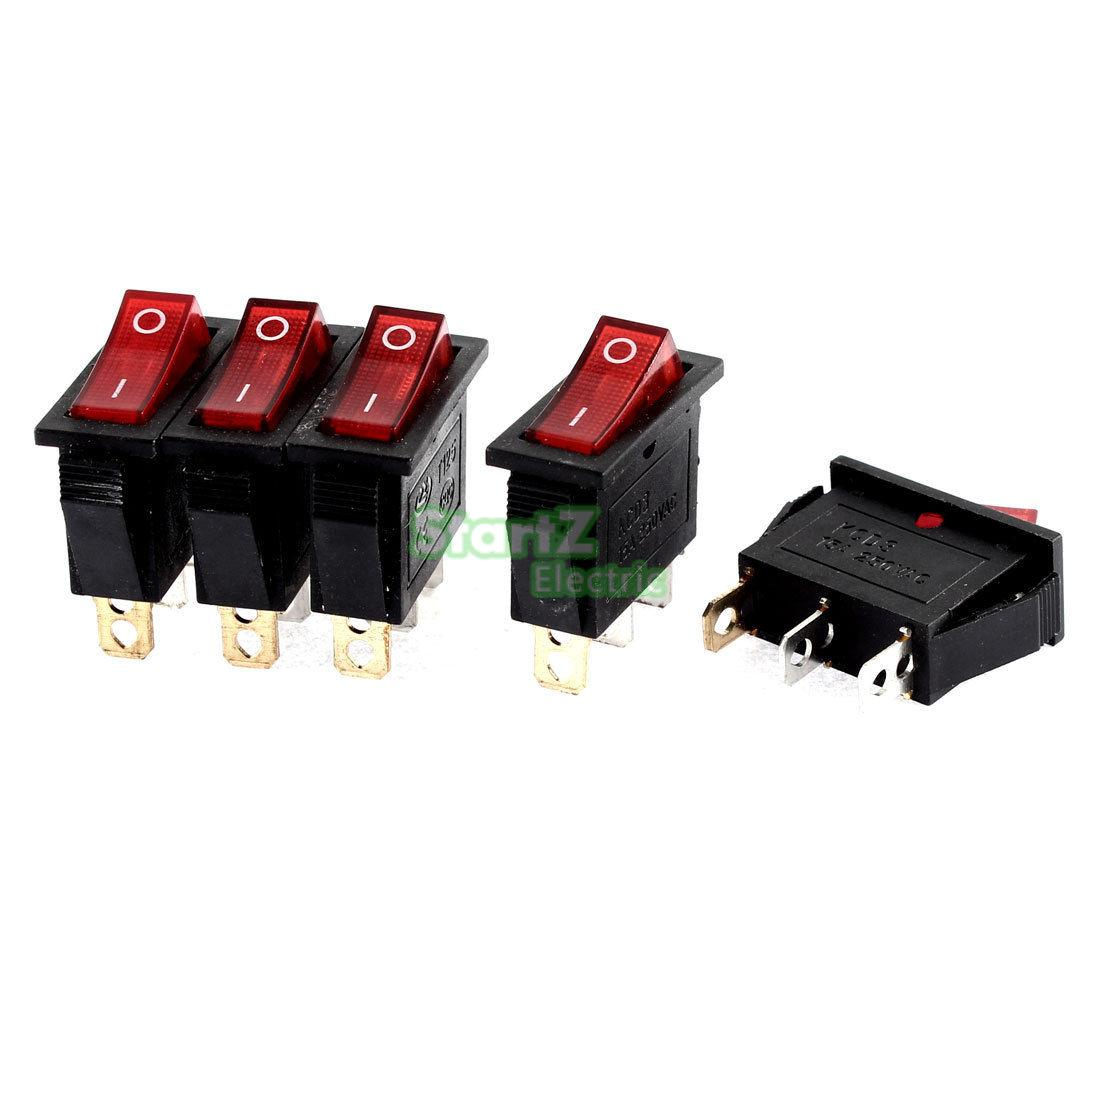 5pcs Spst Switch 3 Pins Celbridge Cabs Rv Marine Boat Led Rocker Panel Circuit Breaker Alex Nld Red Light On Off Snap In Pin 15a